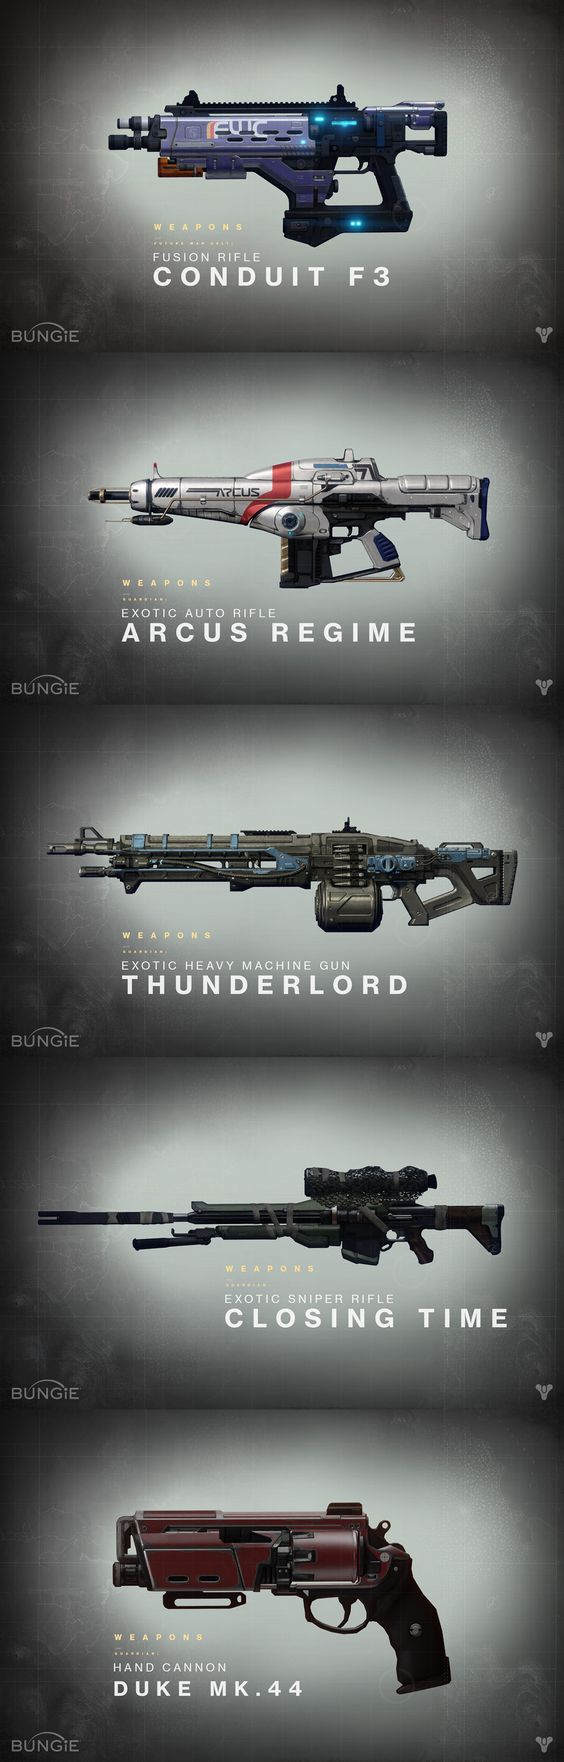 The weapons from destiny only slightly resemble familiar guns, but they combine so many different colours and new mechanisms to create a whole new outcome of firepower. Every weapon in the game is different (in abilities and appearance), so a unique design for each material, barrel, and additional specs is key.